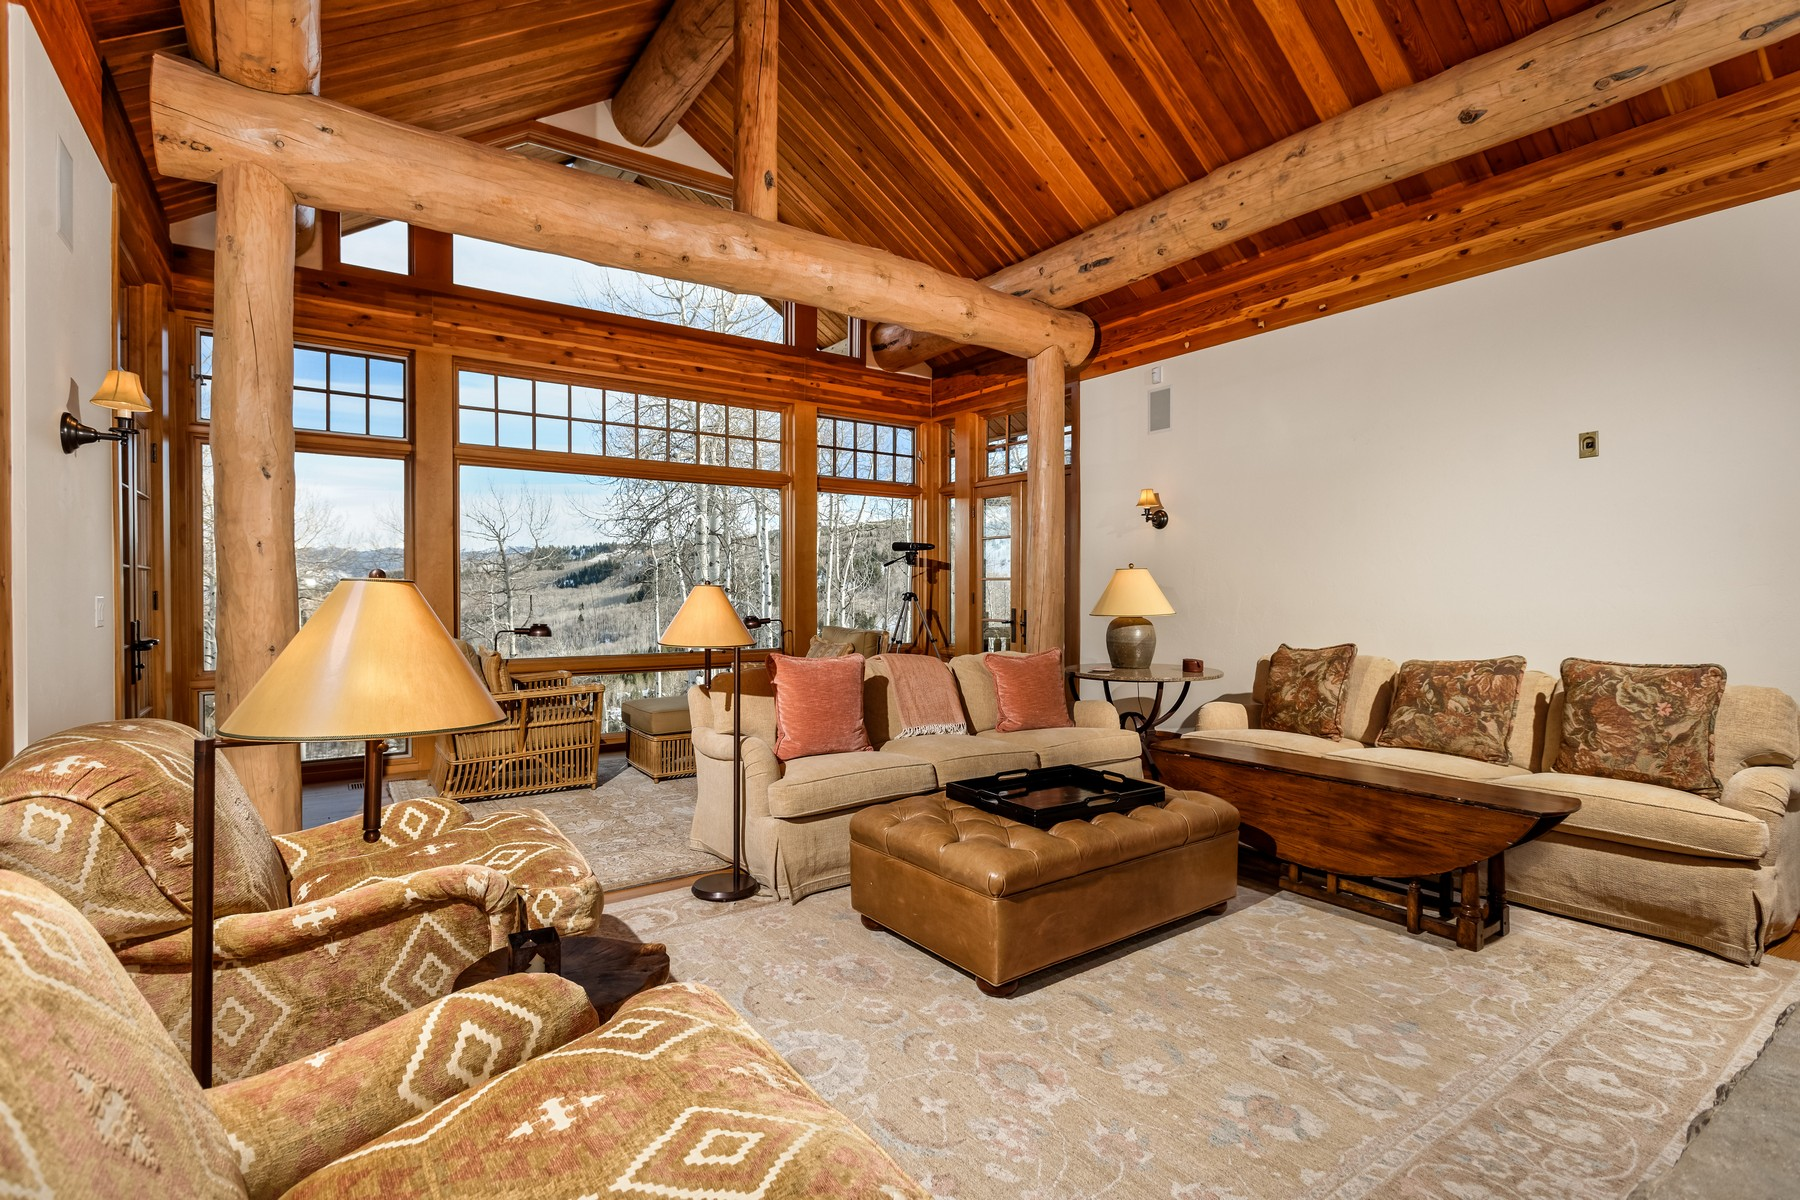 Single Family Home for Rent at 1614 Faraway Road Snowmass Village, Colorado, 81615 United States